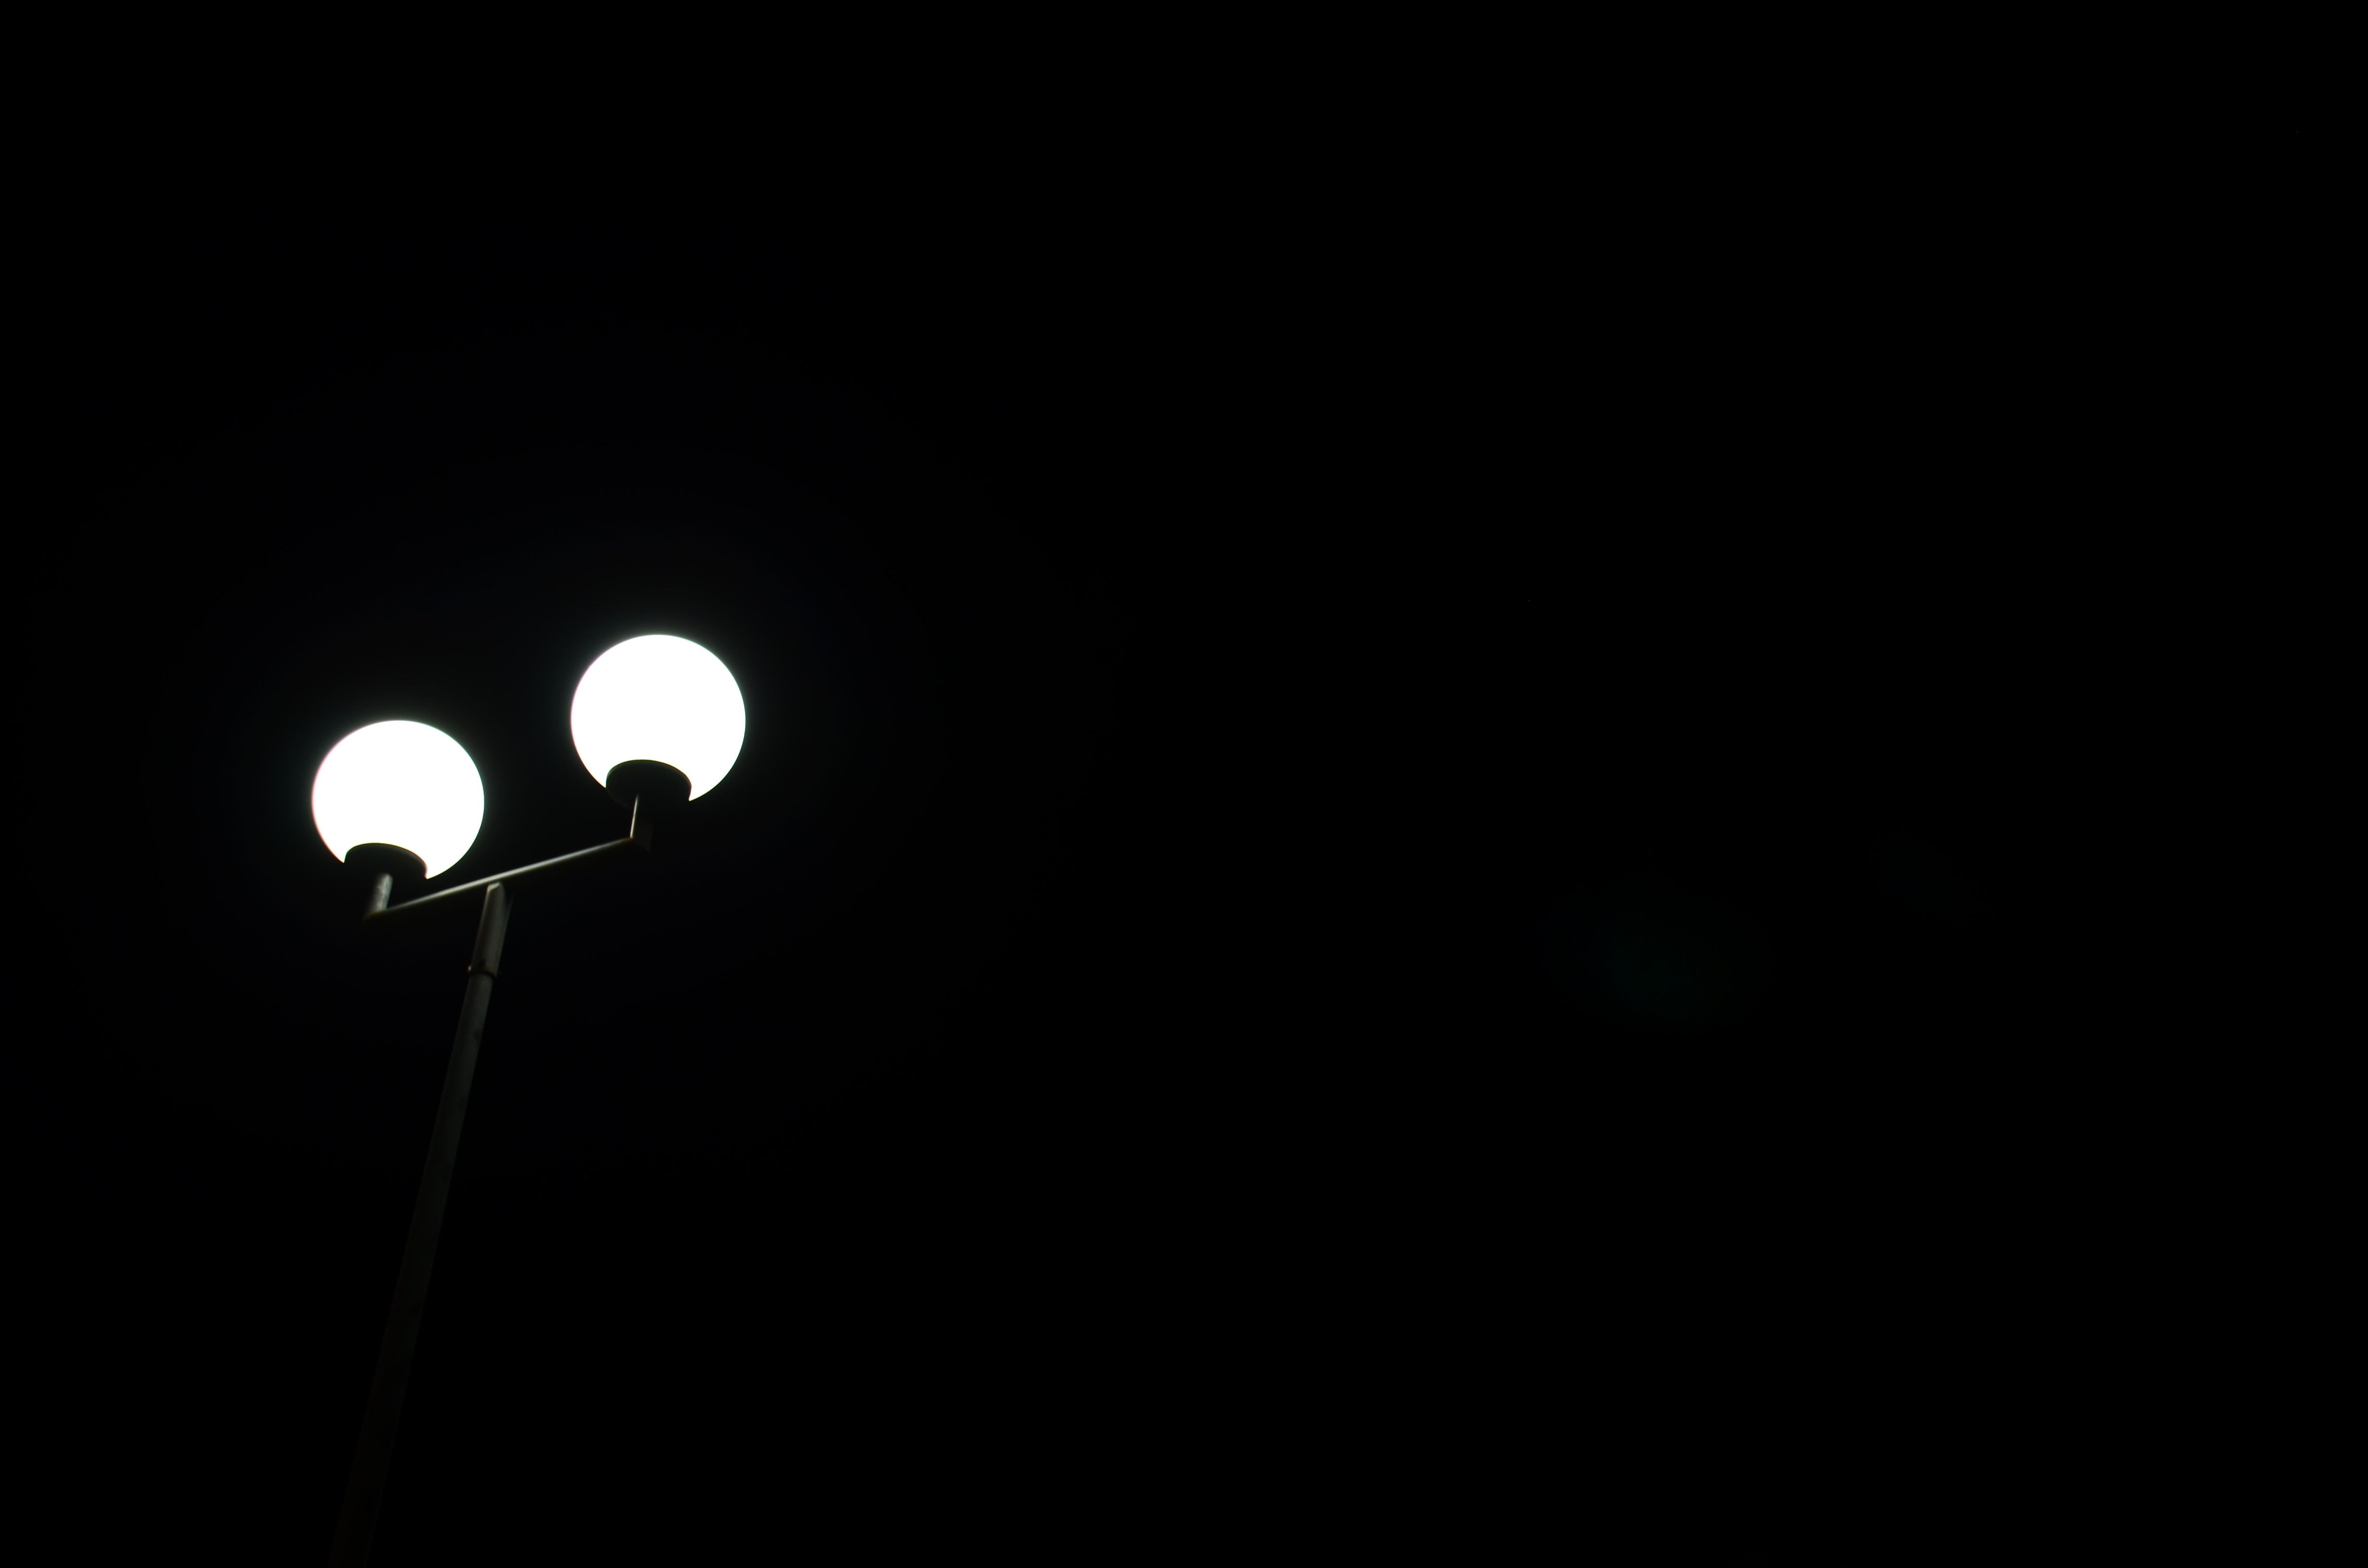 112952 Screensavers and Wallpapers Balls for phone. Download Night, Shine, Light, Minimalism, Lamp, Lantern, Bw, Chb, Balls pictures for free